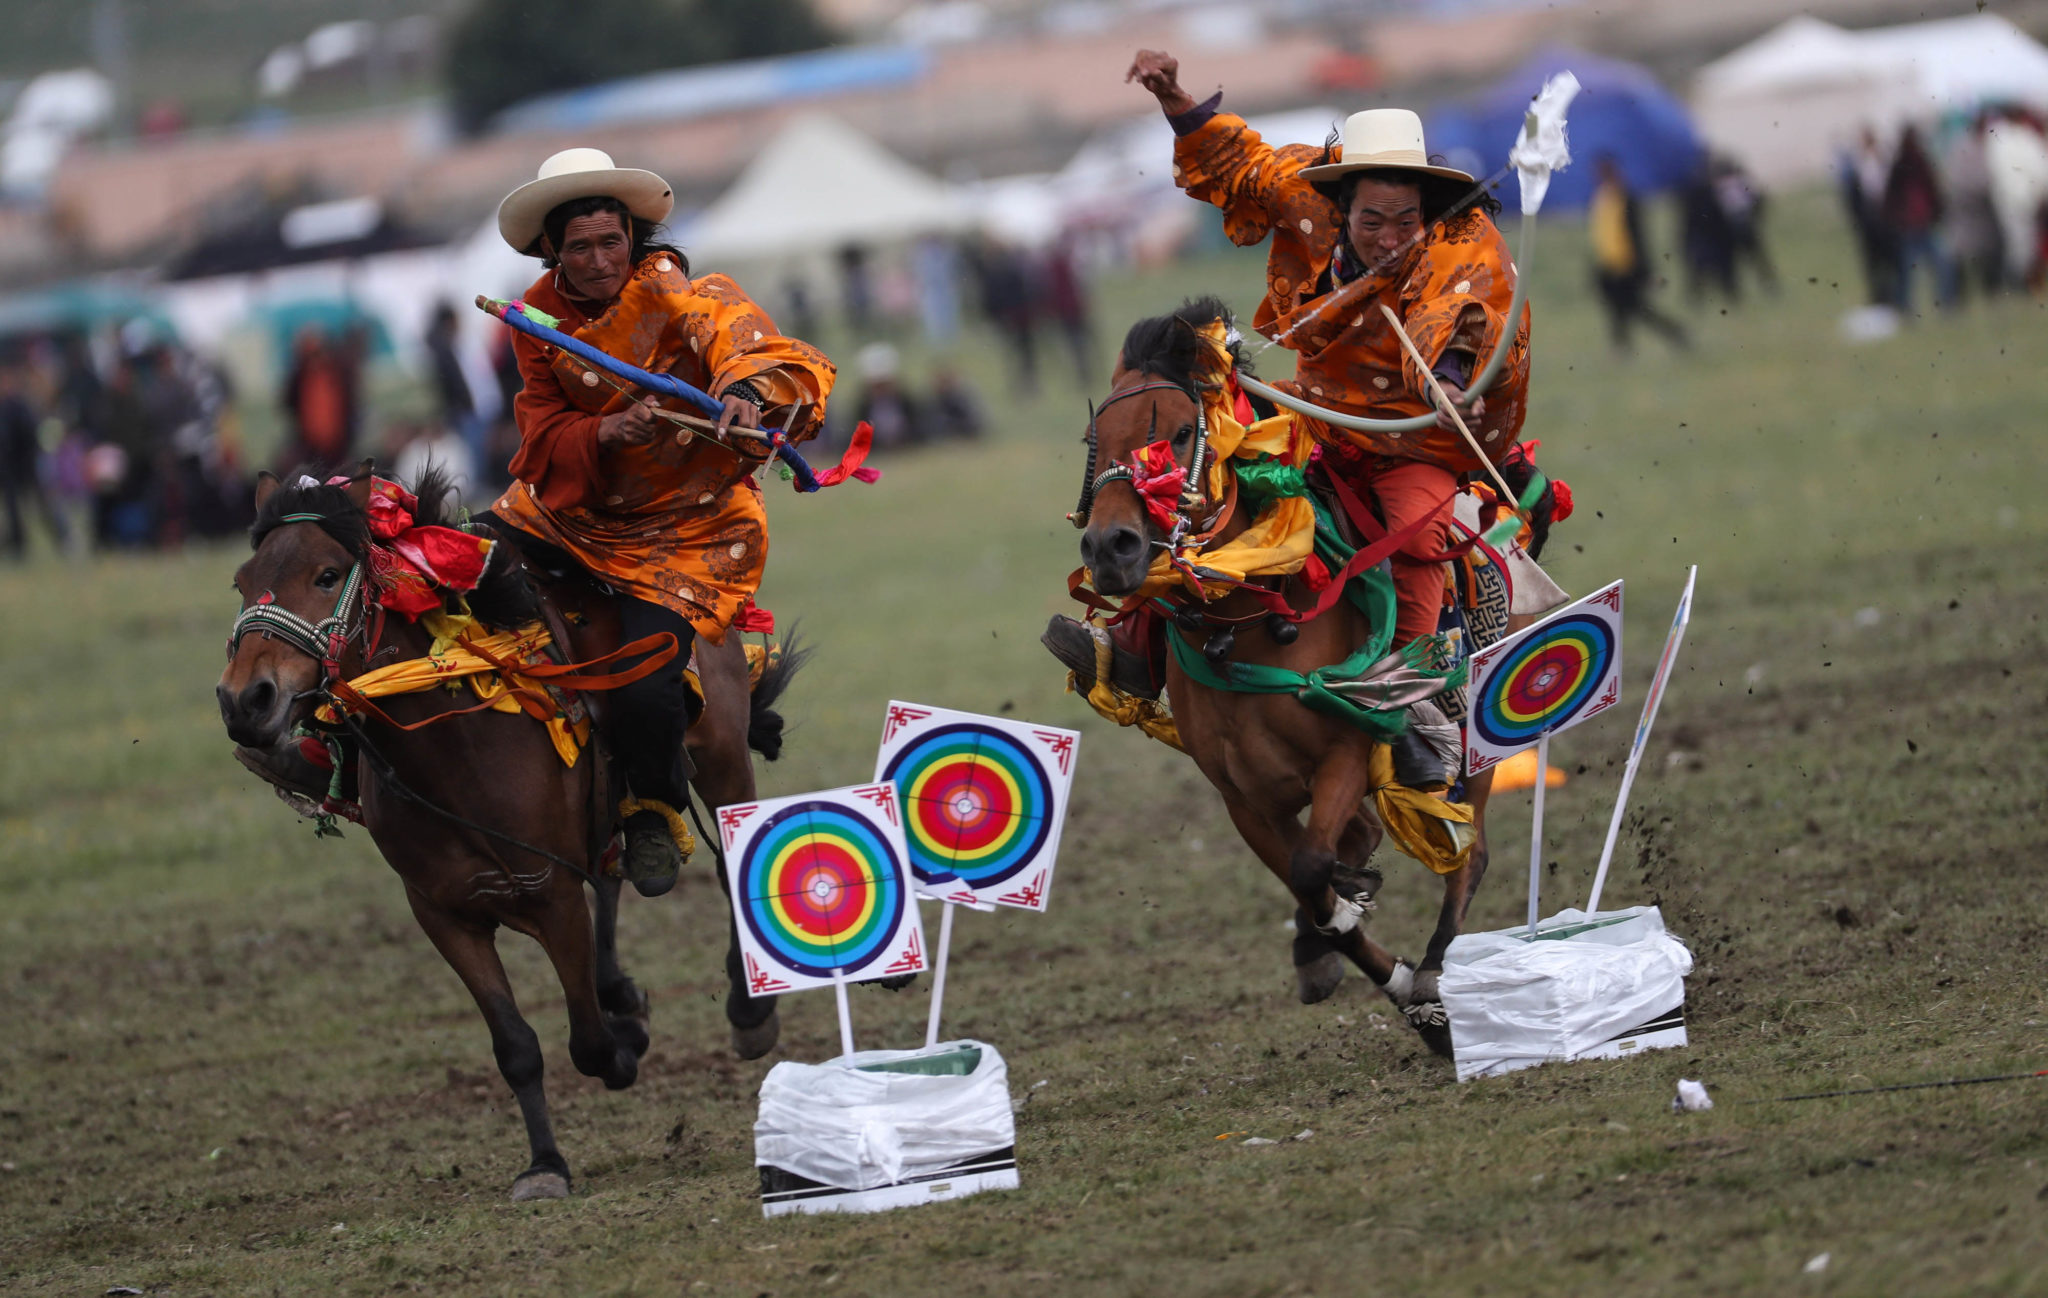 Litang Horse Racing Festival, Sichuan Province, China - photo by Xinhua/Jiang Hongjing - Globetrotting horse riding holidays